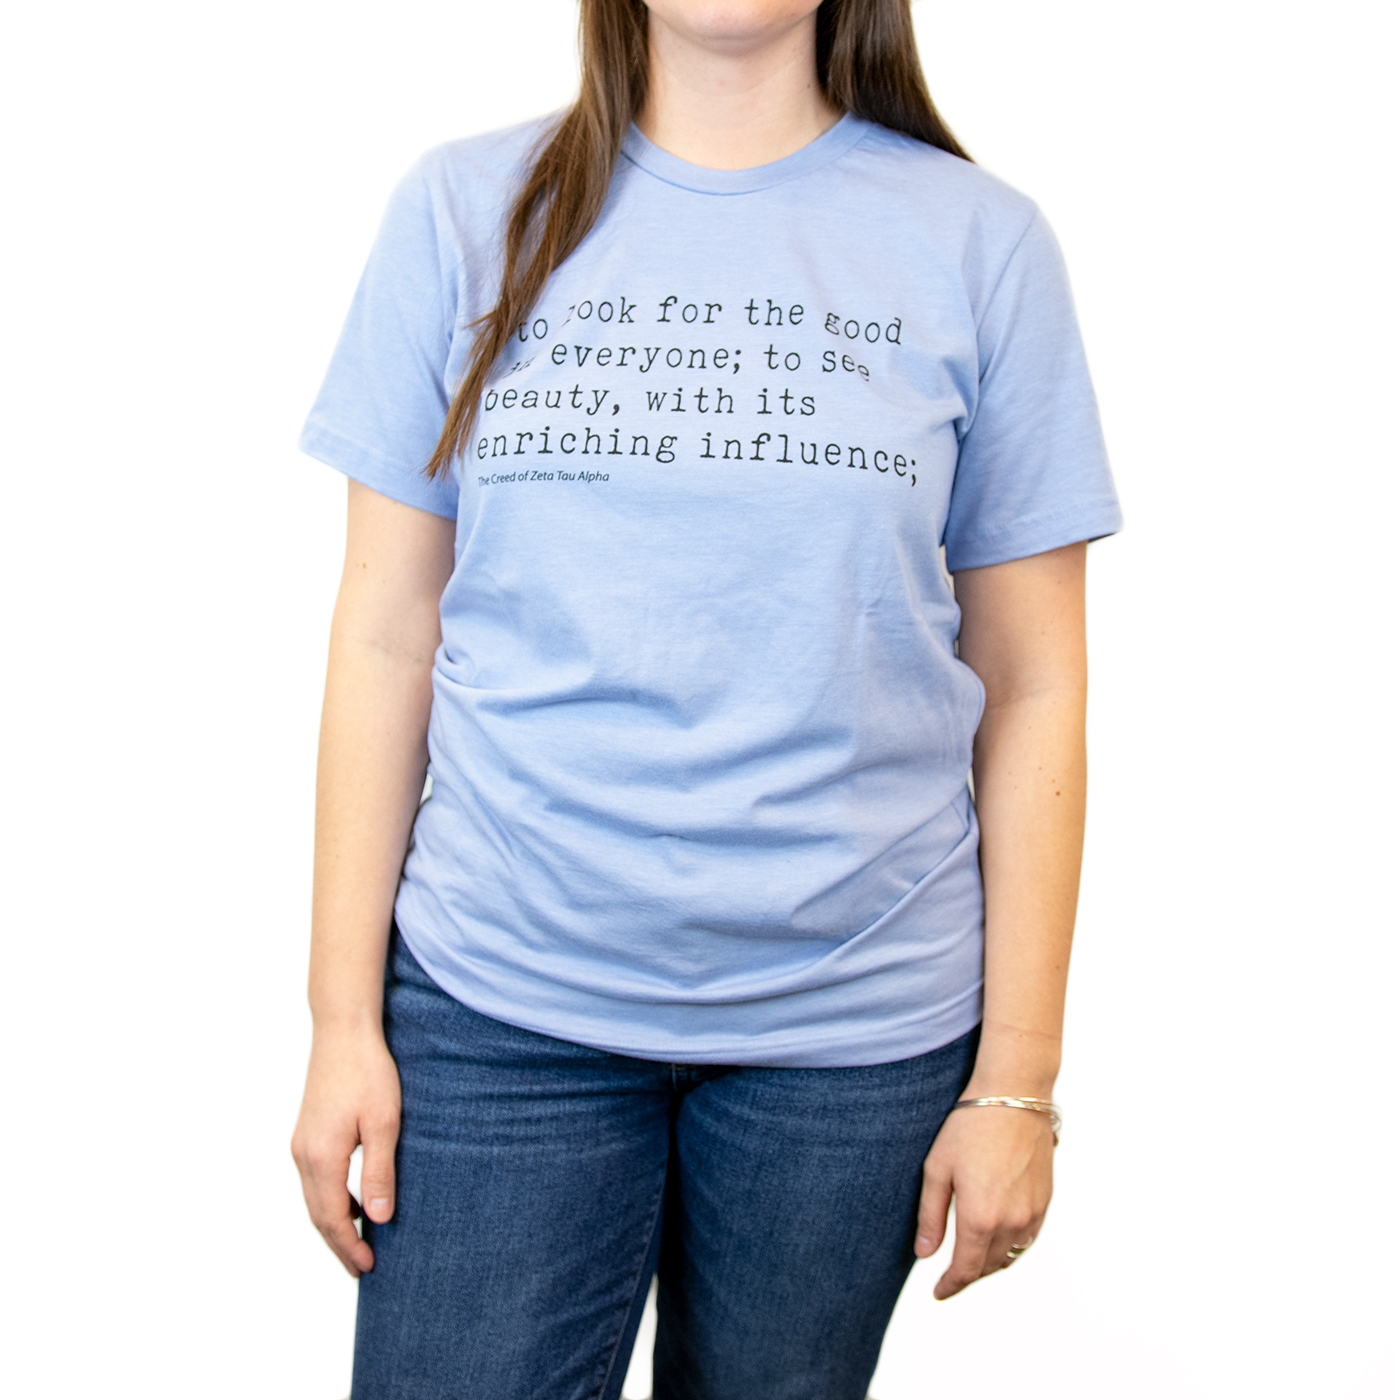 Zeta Tau Alpha Creed Tee